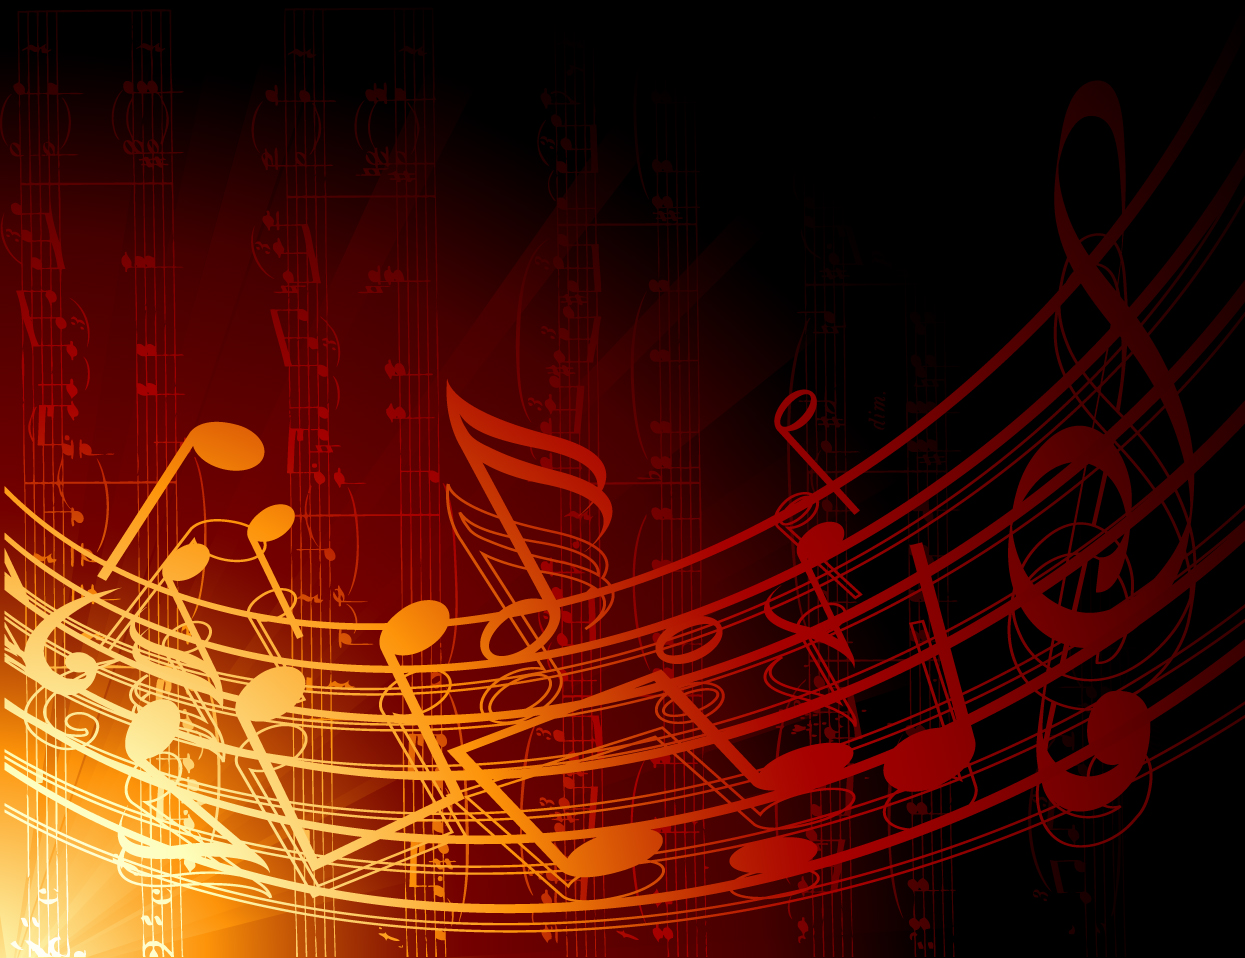 Music Background Images: Music Abstract Backgrounds #4009 Wallpaper